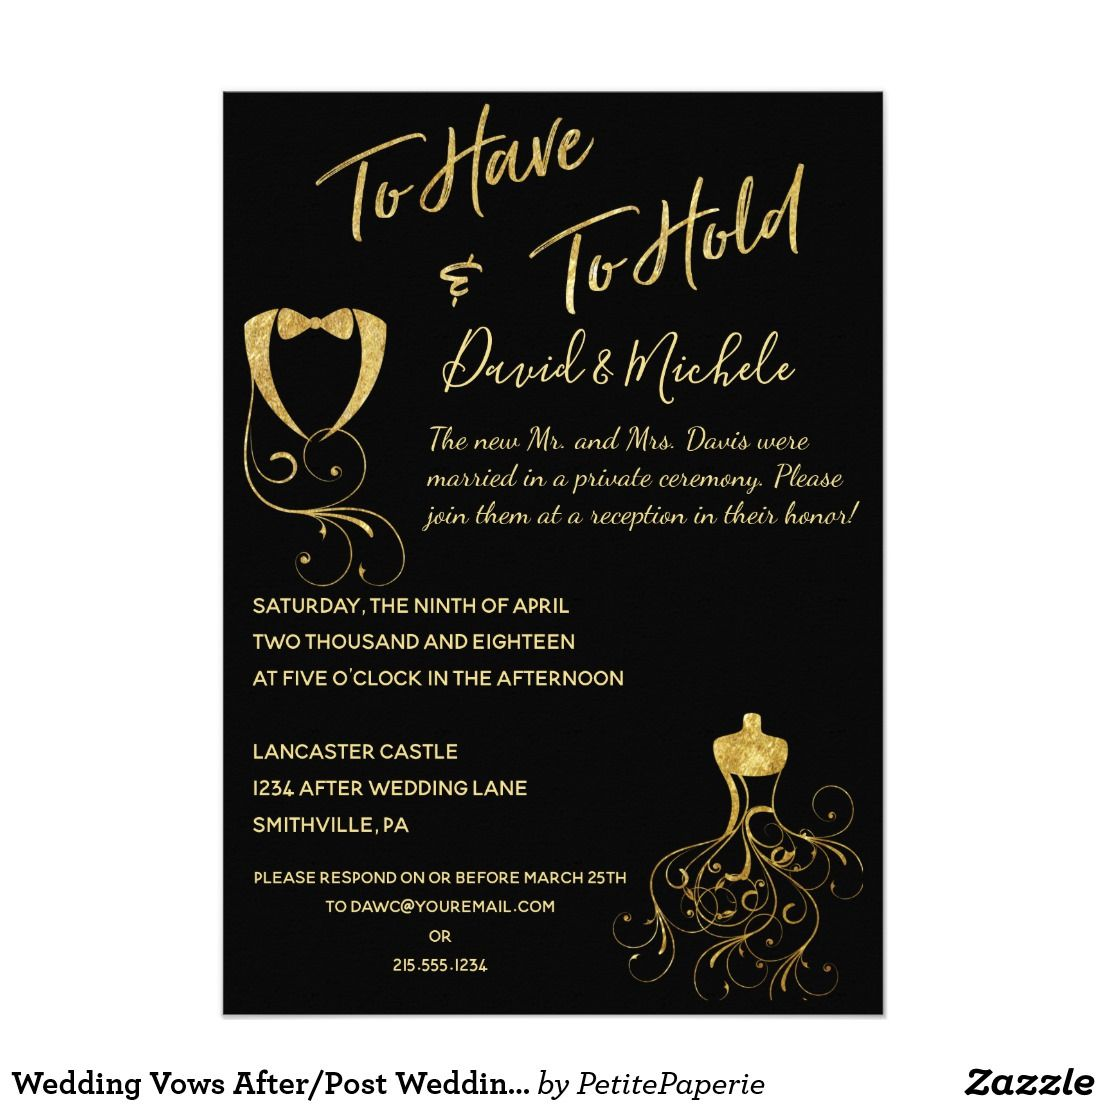 Wedding Vows After/Post Wedding Party Invitation Zazzle